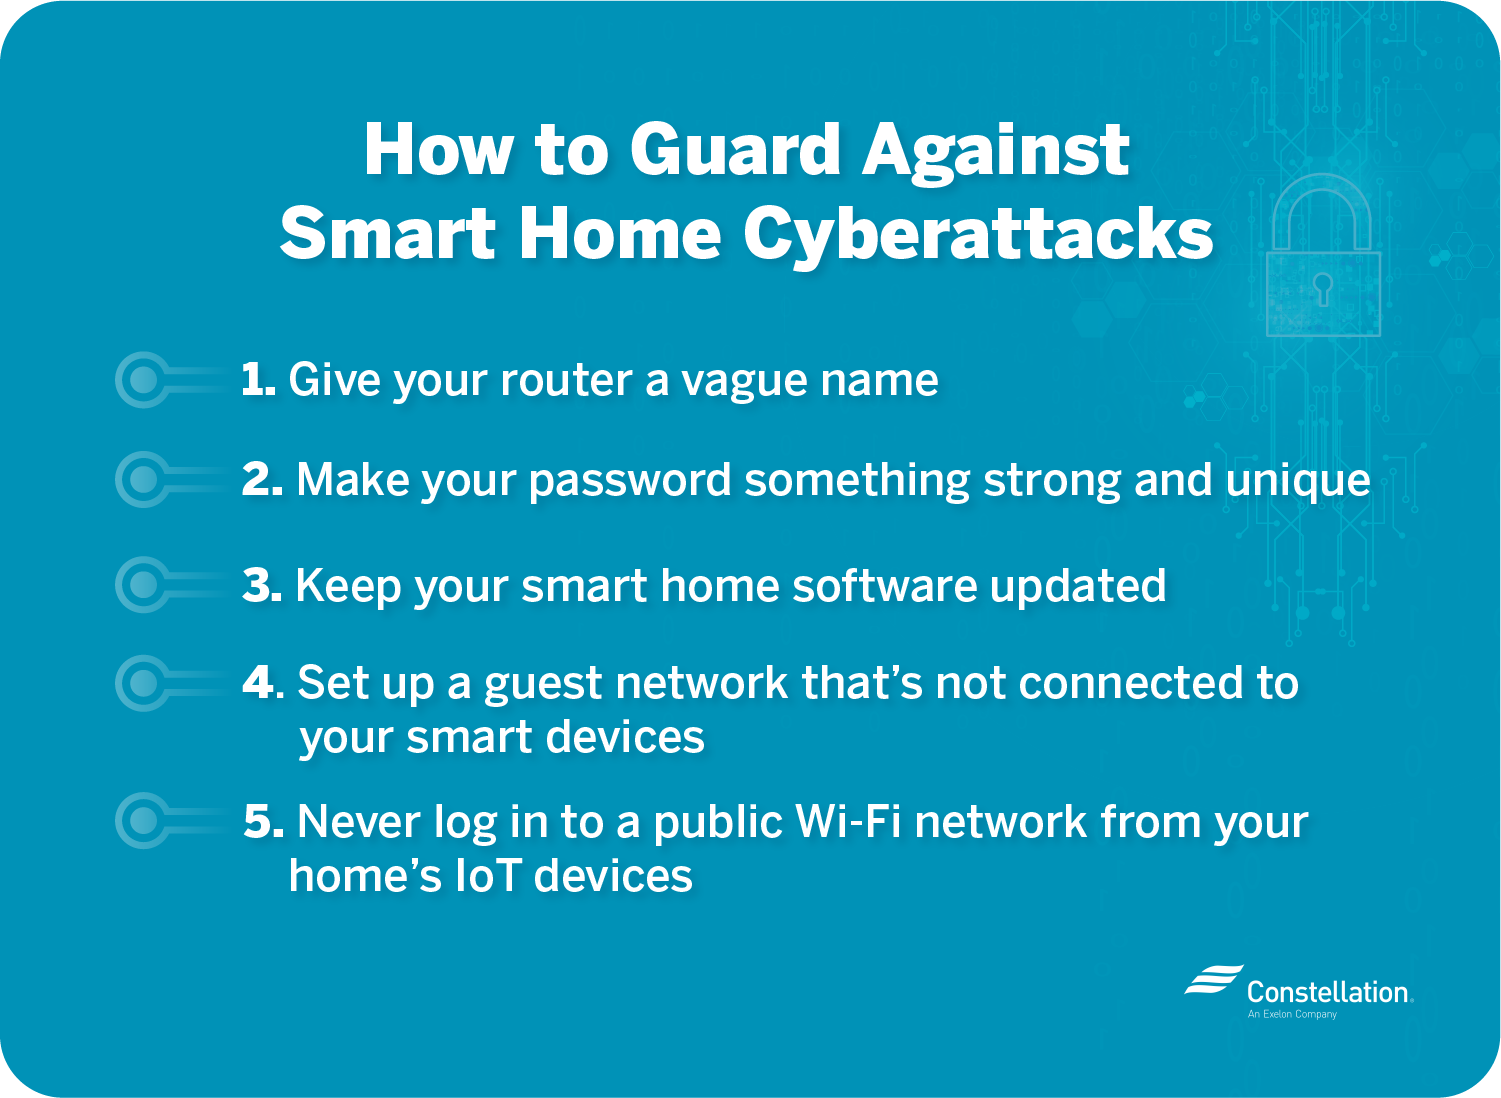 How to guard against smart home cyberattacks